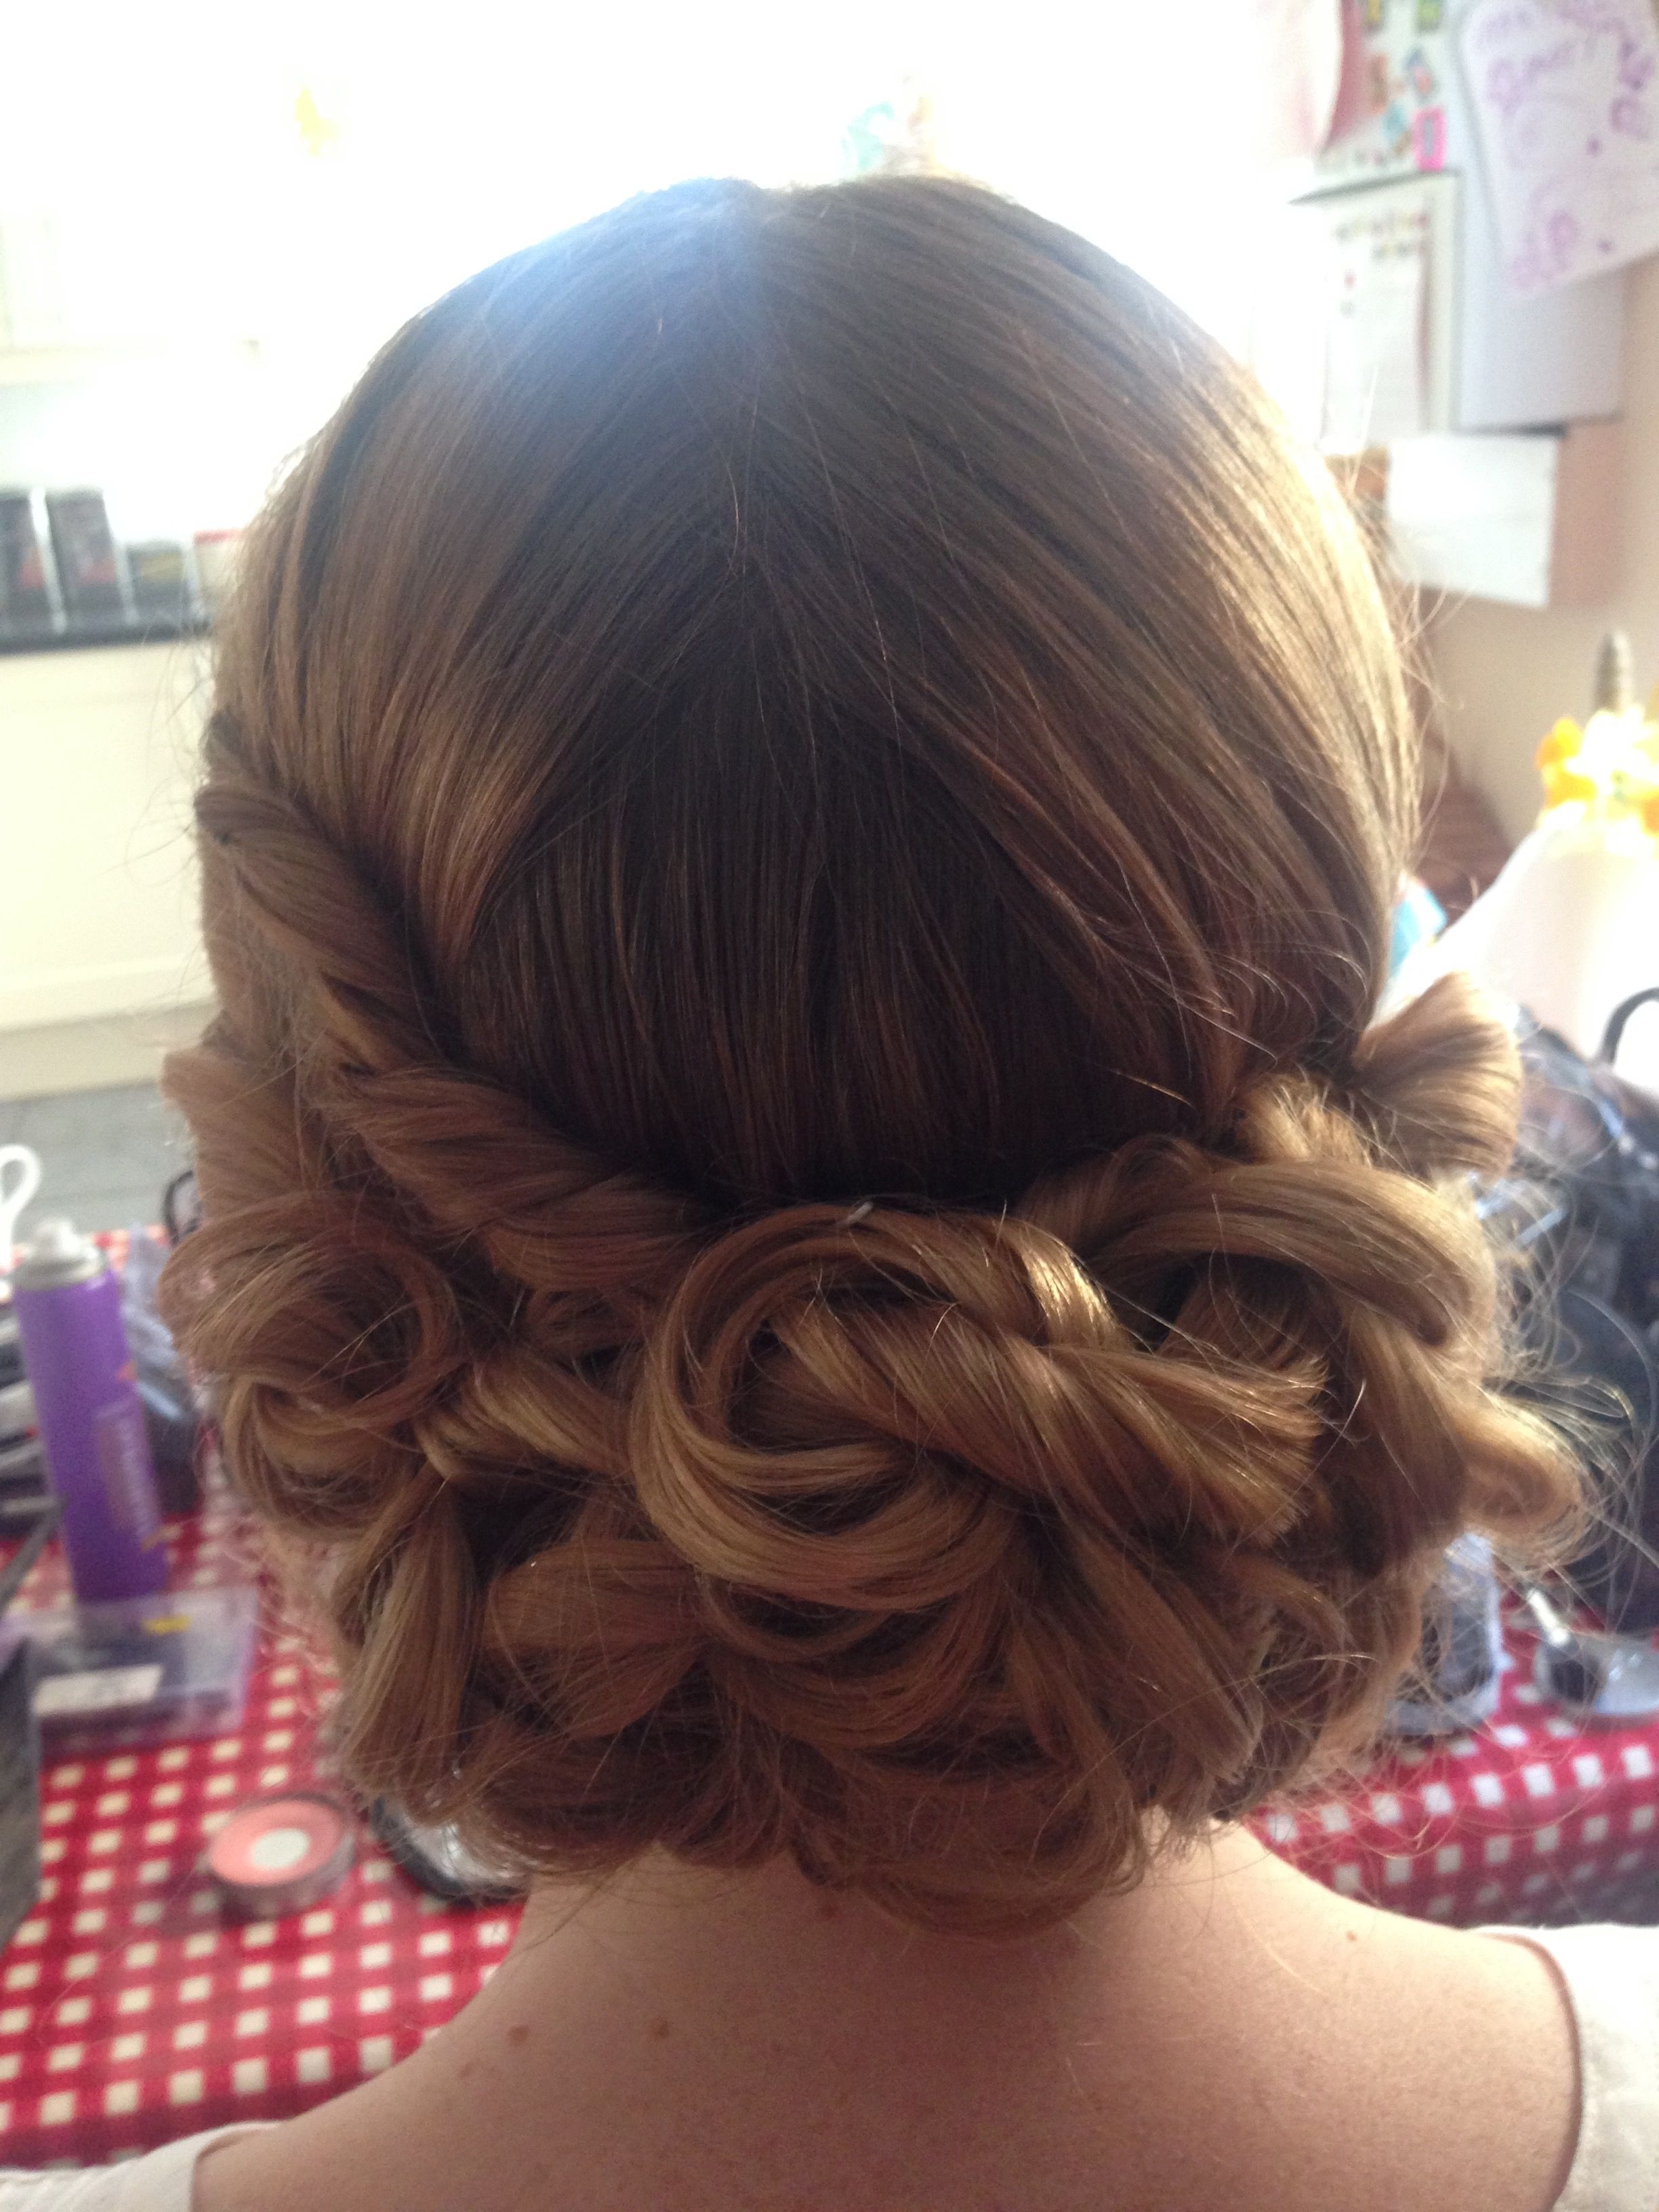 One of our brides at her trial hair lipstick u curls